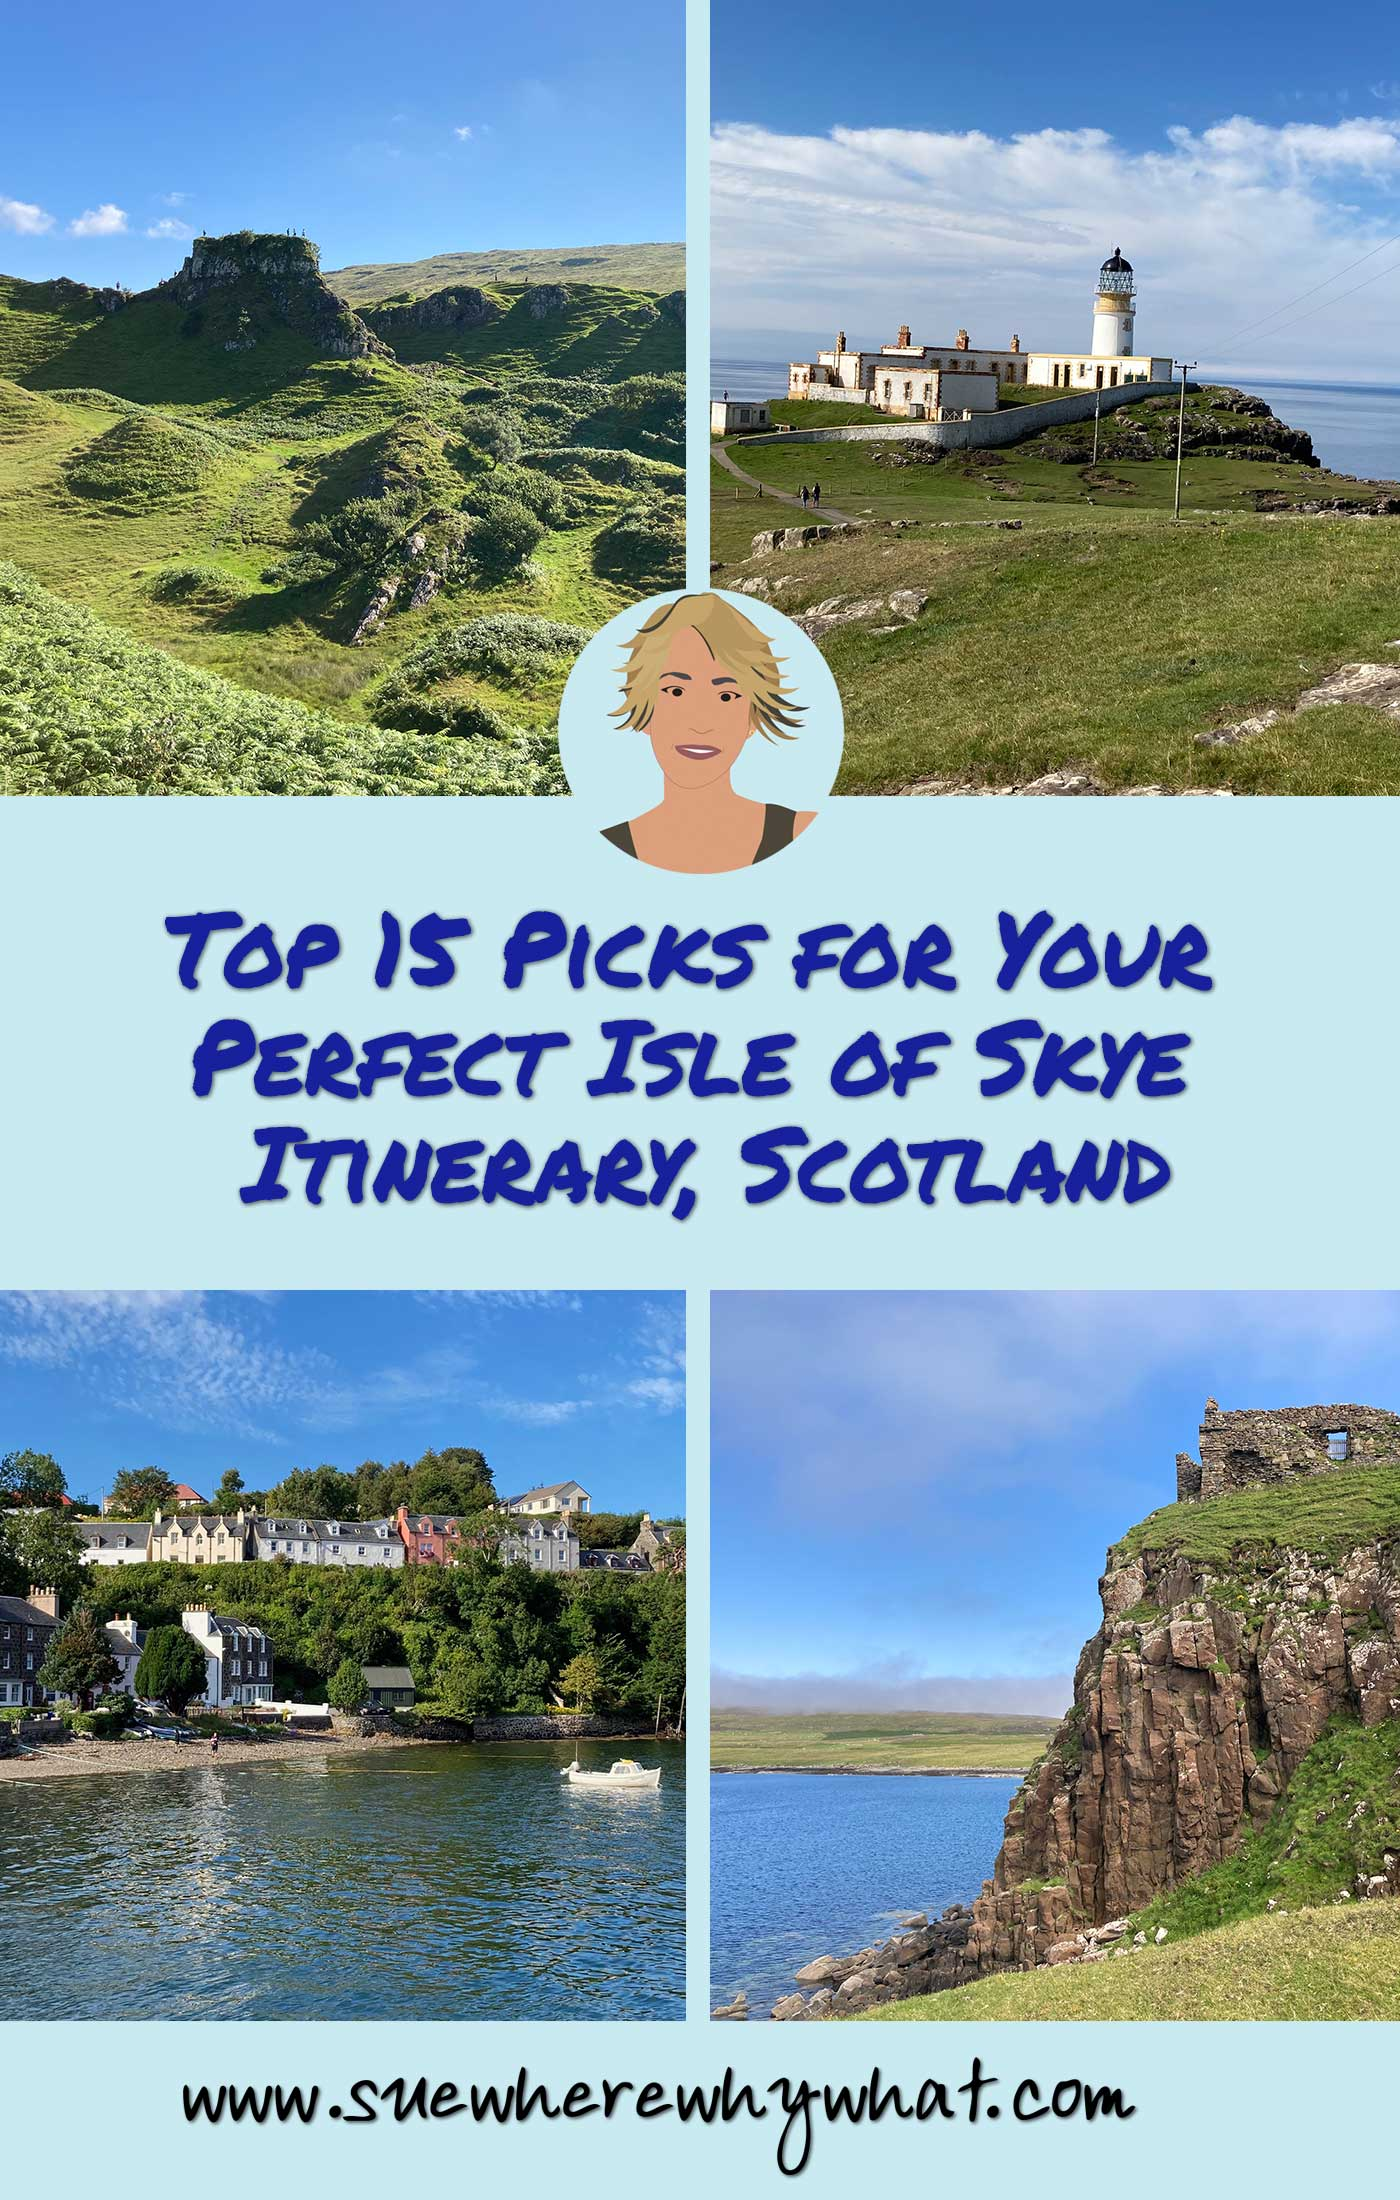 Top 15 Picks for Your Perfect Isle of Skye Itinerary